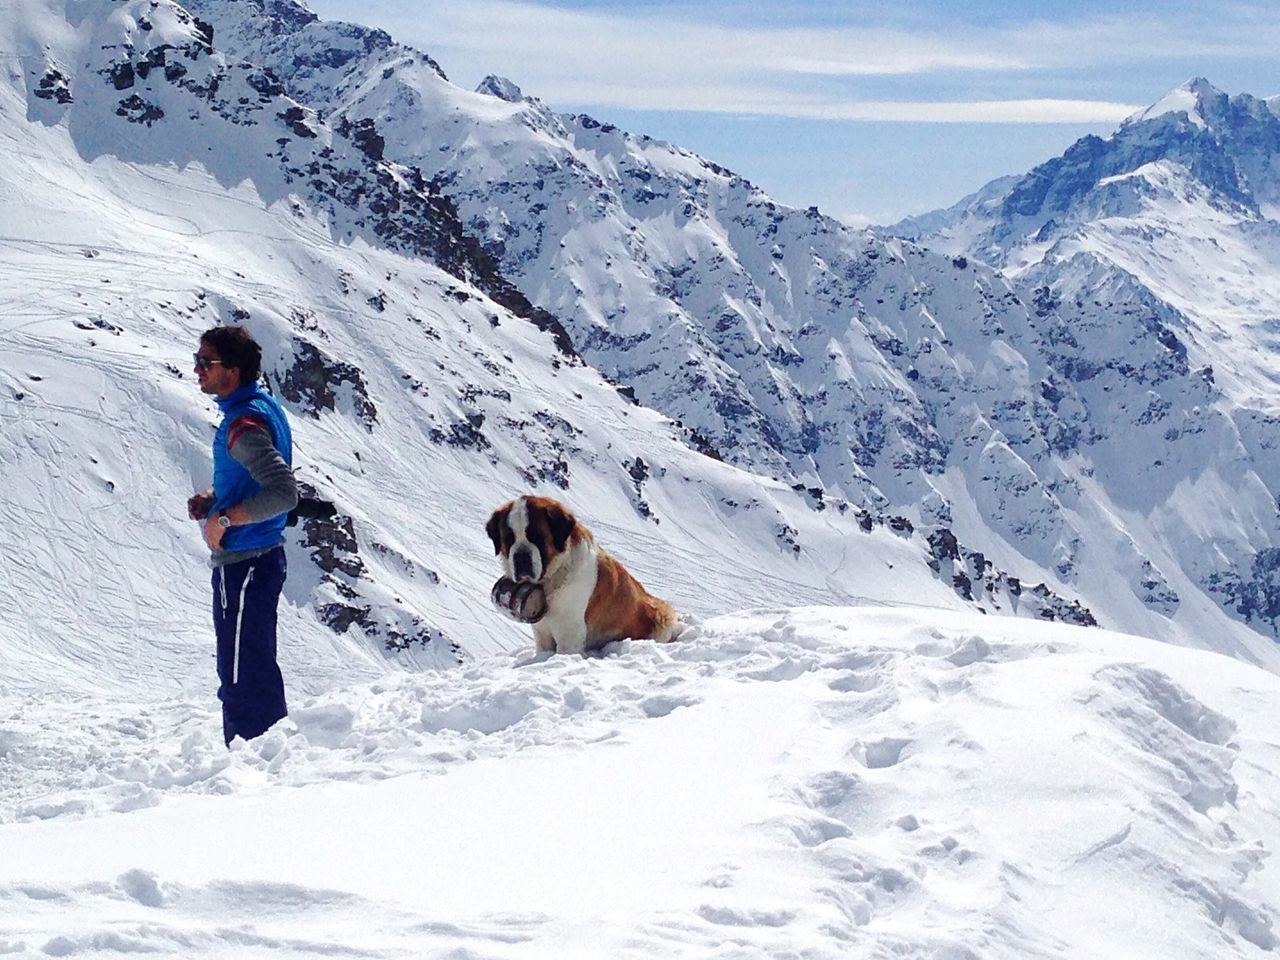 Snow Cold Temperature Mountain Snowcapped Mountain Tourist Vacations Dog Rescuer Rescuers Rescue Lifestyles Non-urban Scene Winter Mountain Range White Color Tourism Travel Beauty In Nature Alps Switzerland Verbier Safeguard Safety Safe Snow Sports